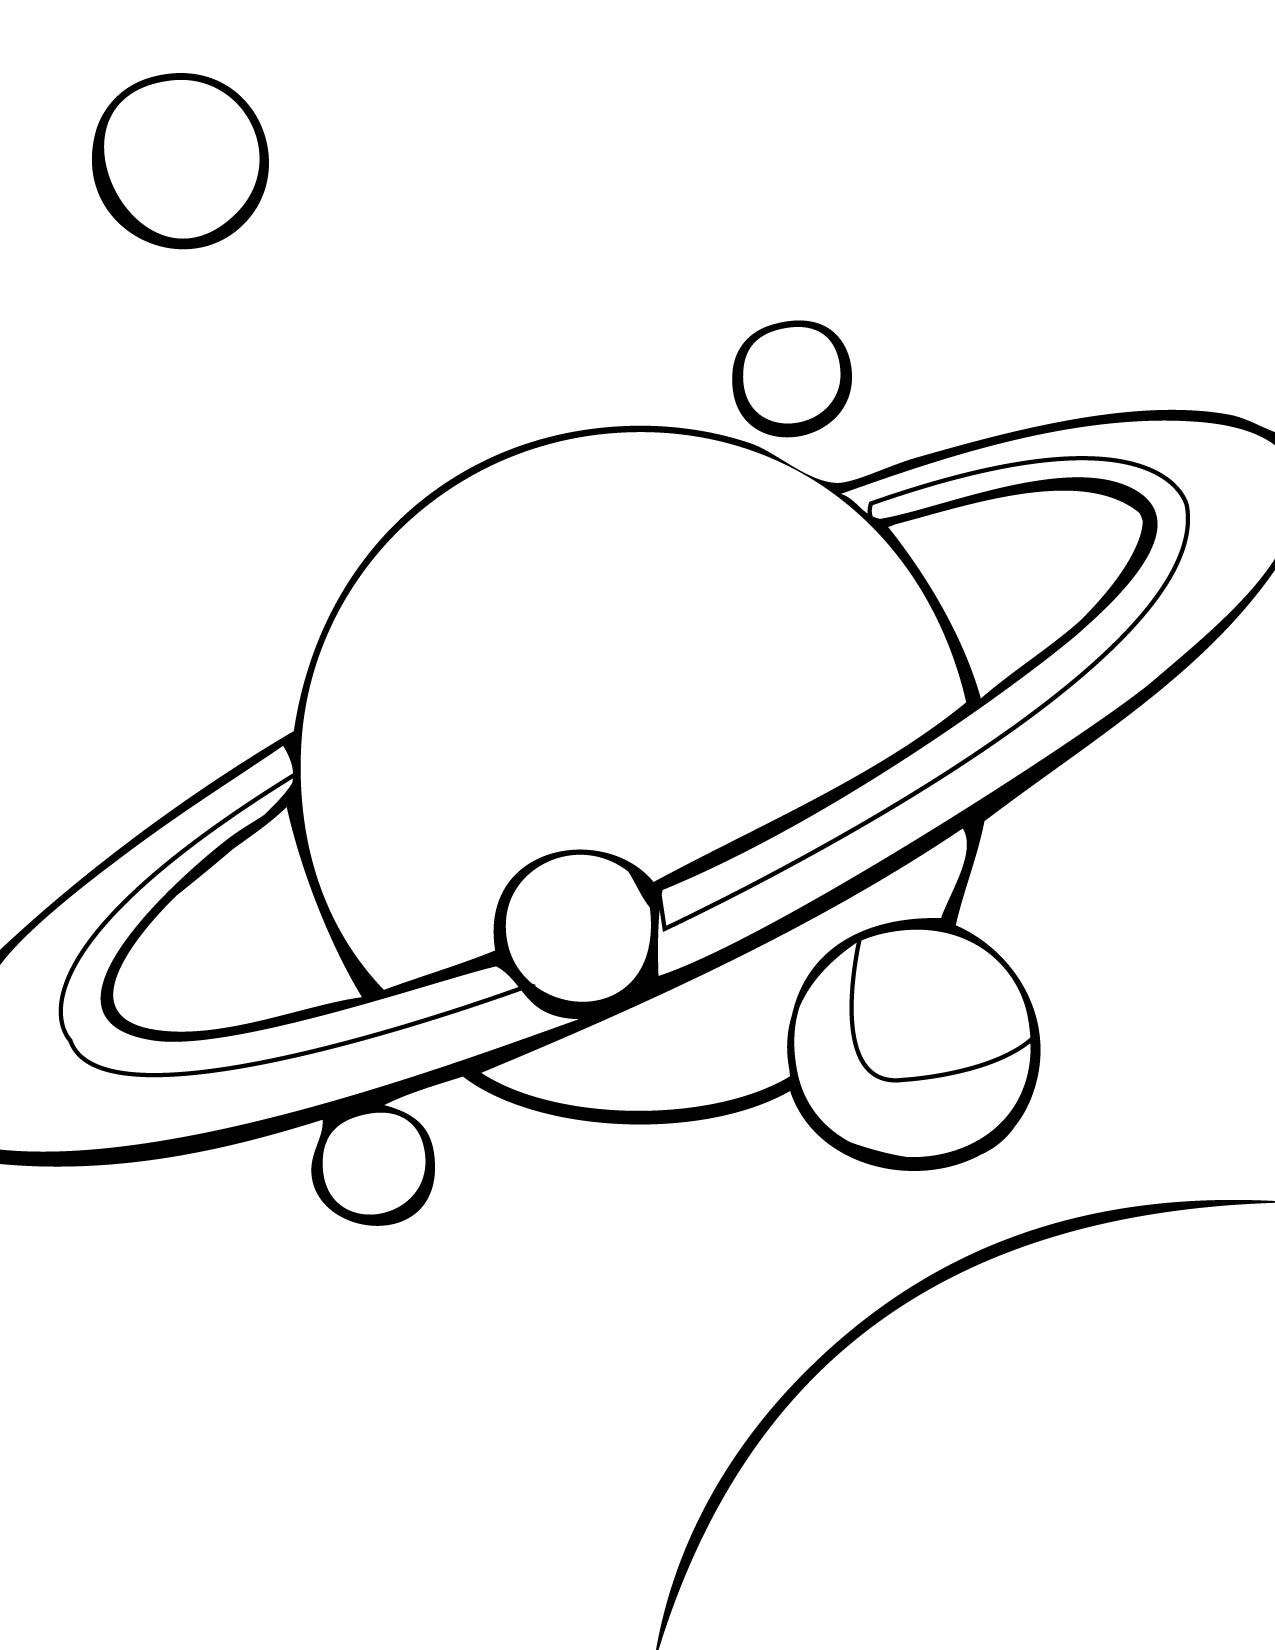 Solar System Black And White